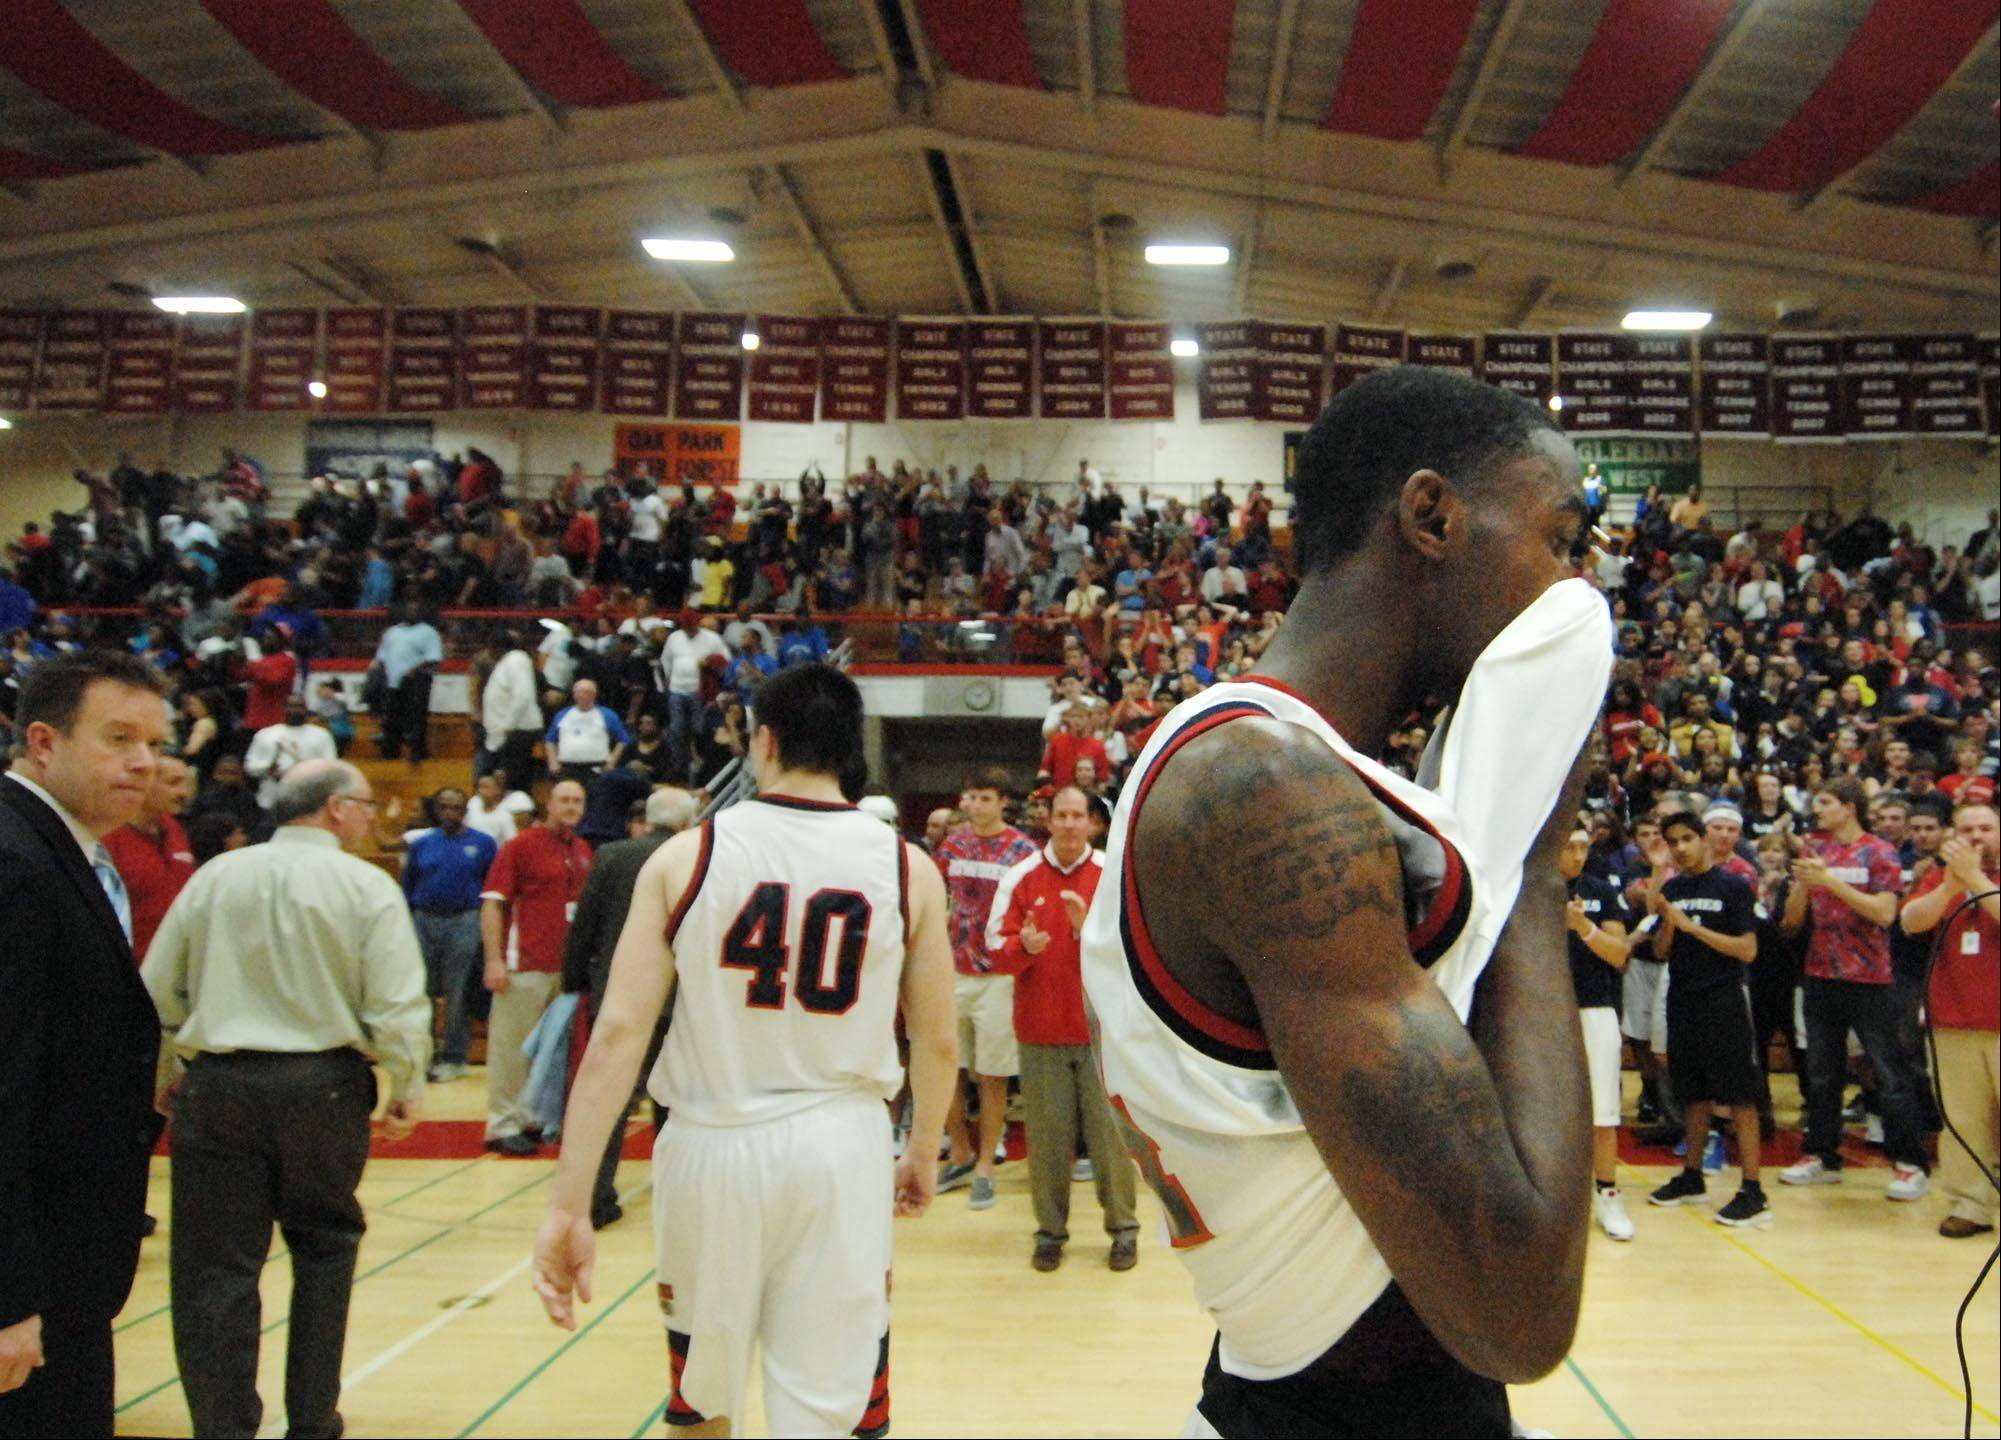 West Aurora's Juwan Starks reacts after losing to Proviso East in the Hinsdale Central supersectional game.